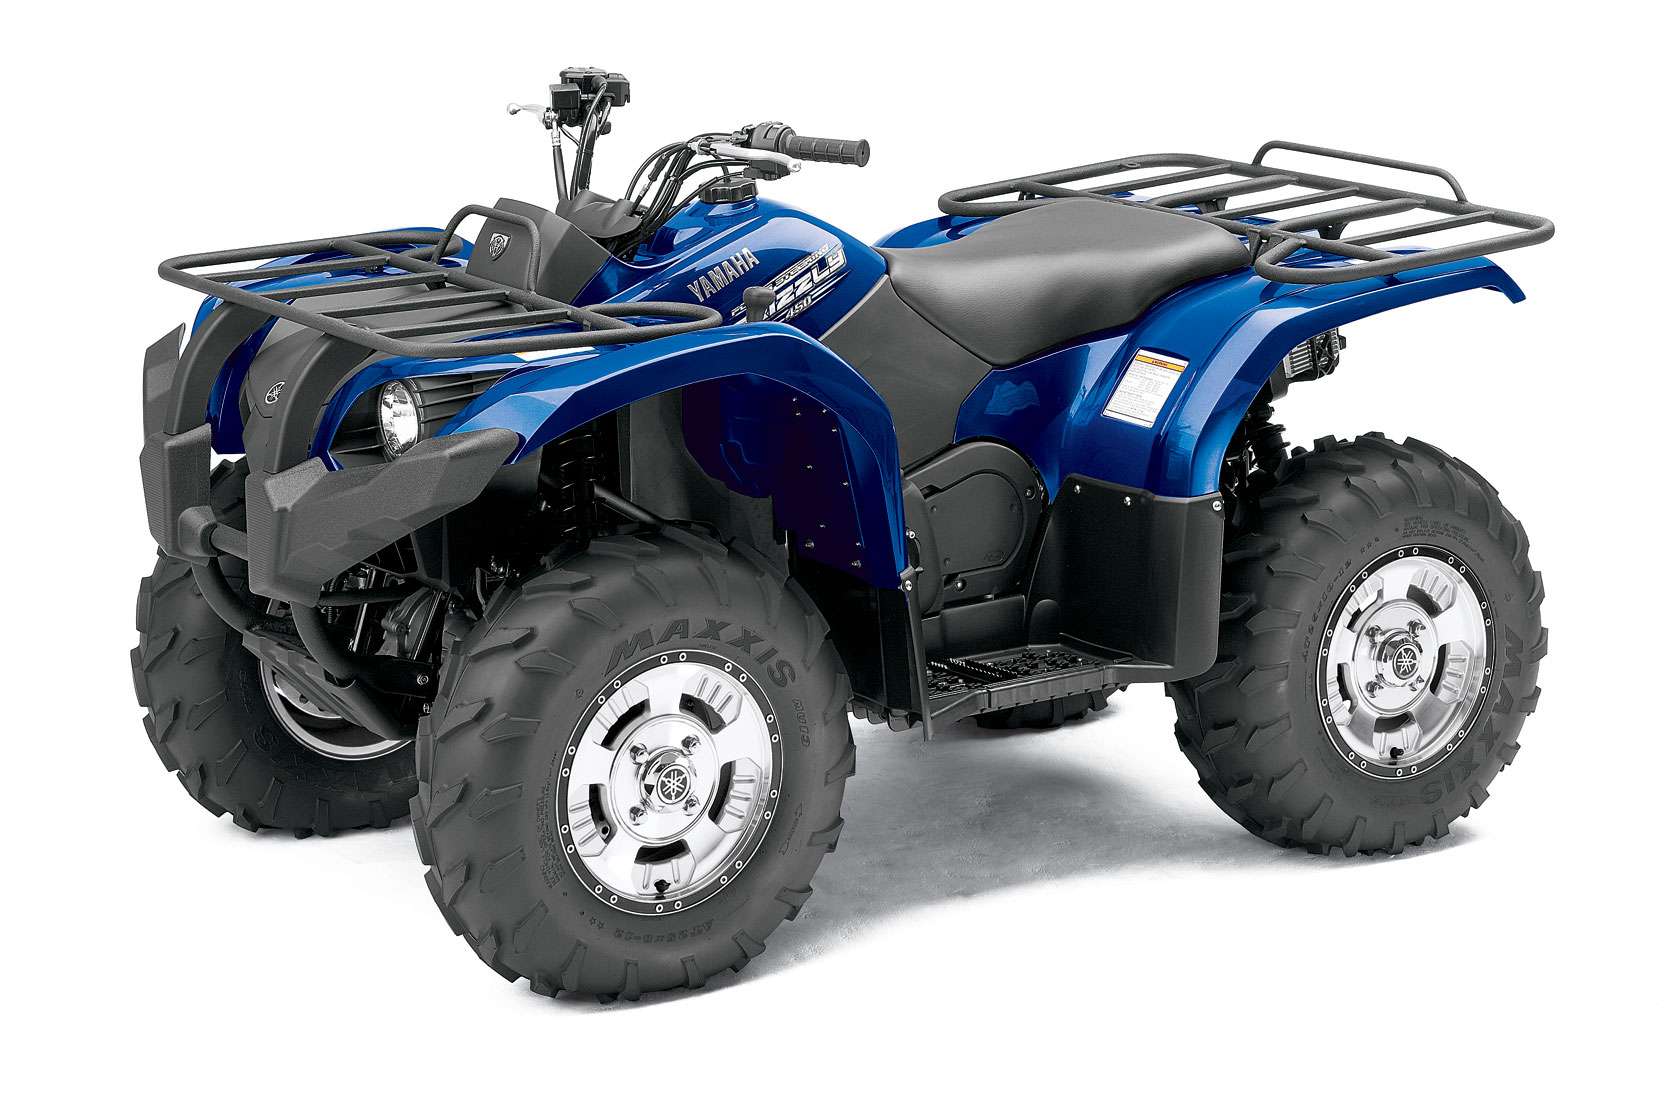 Yamaha grizzly 450 4x4 eps specs 2010 2011 autoevolution for Yamaha kodiak 700 top speed